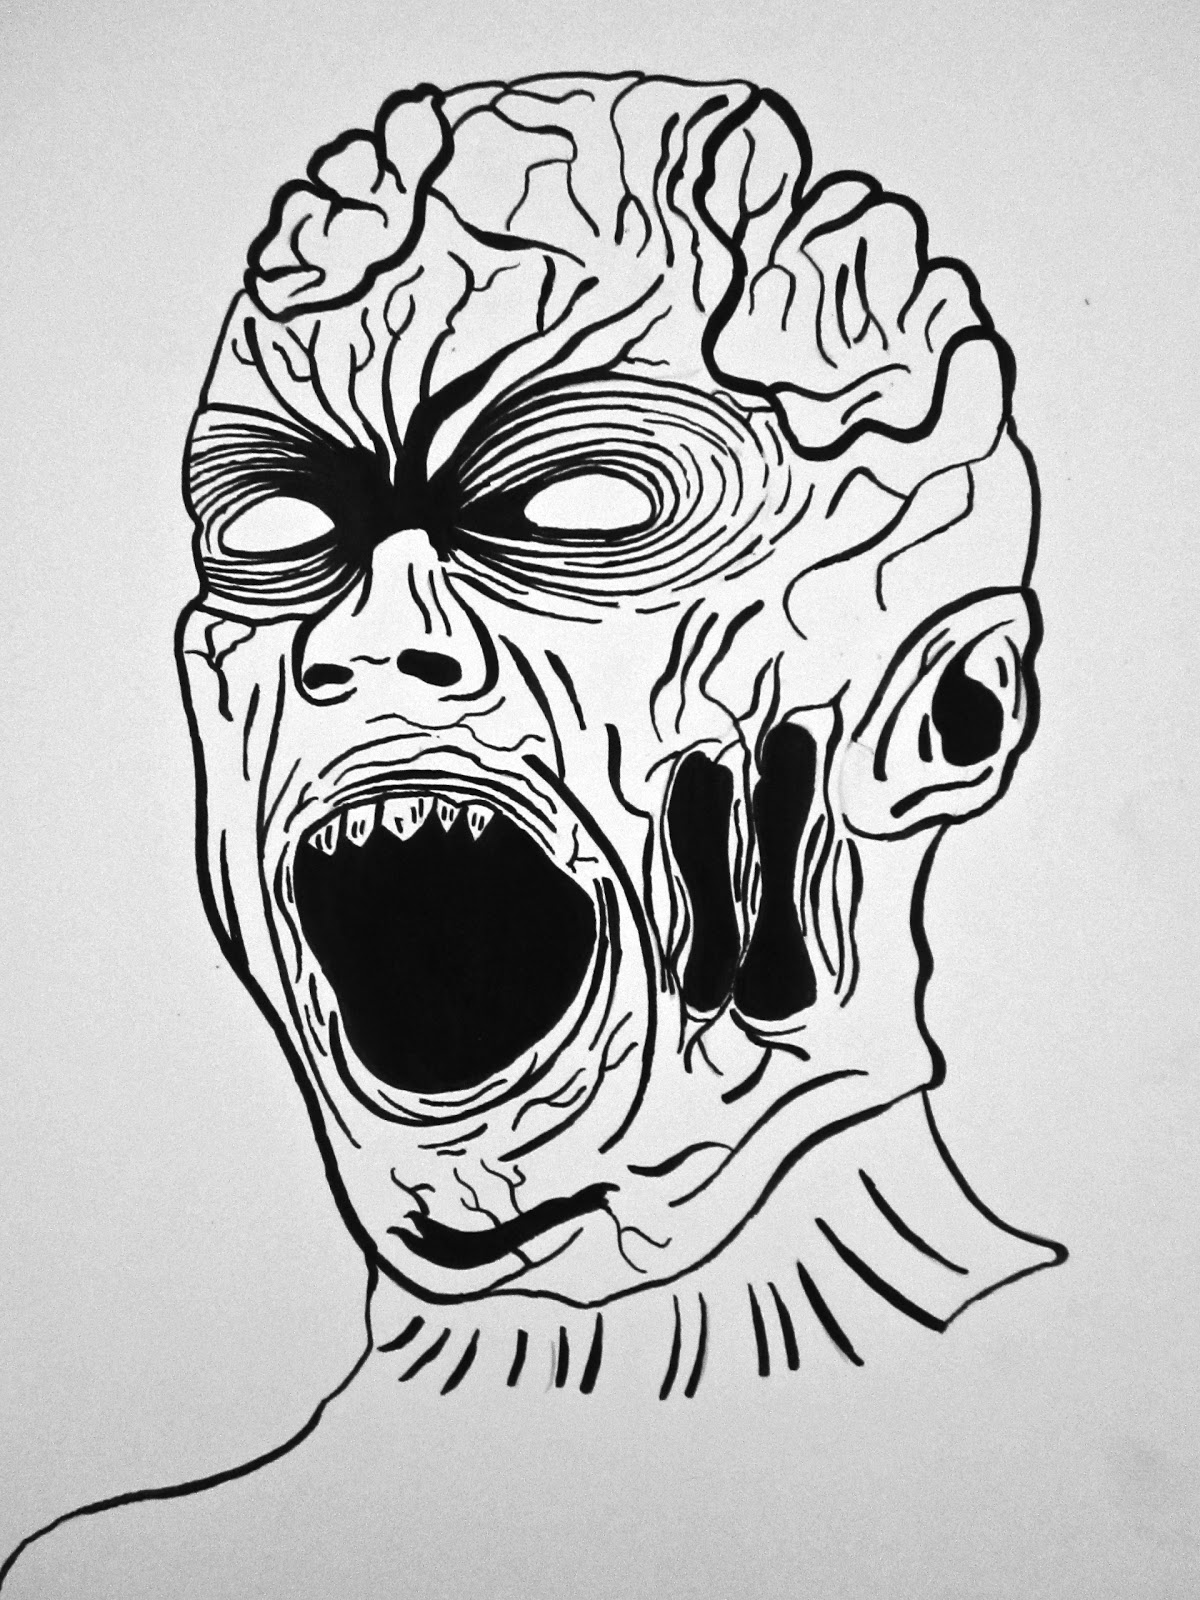 Posted by Graeme Nishida at 8 00 PMZombie Face Drawing